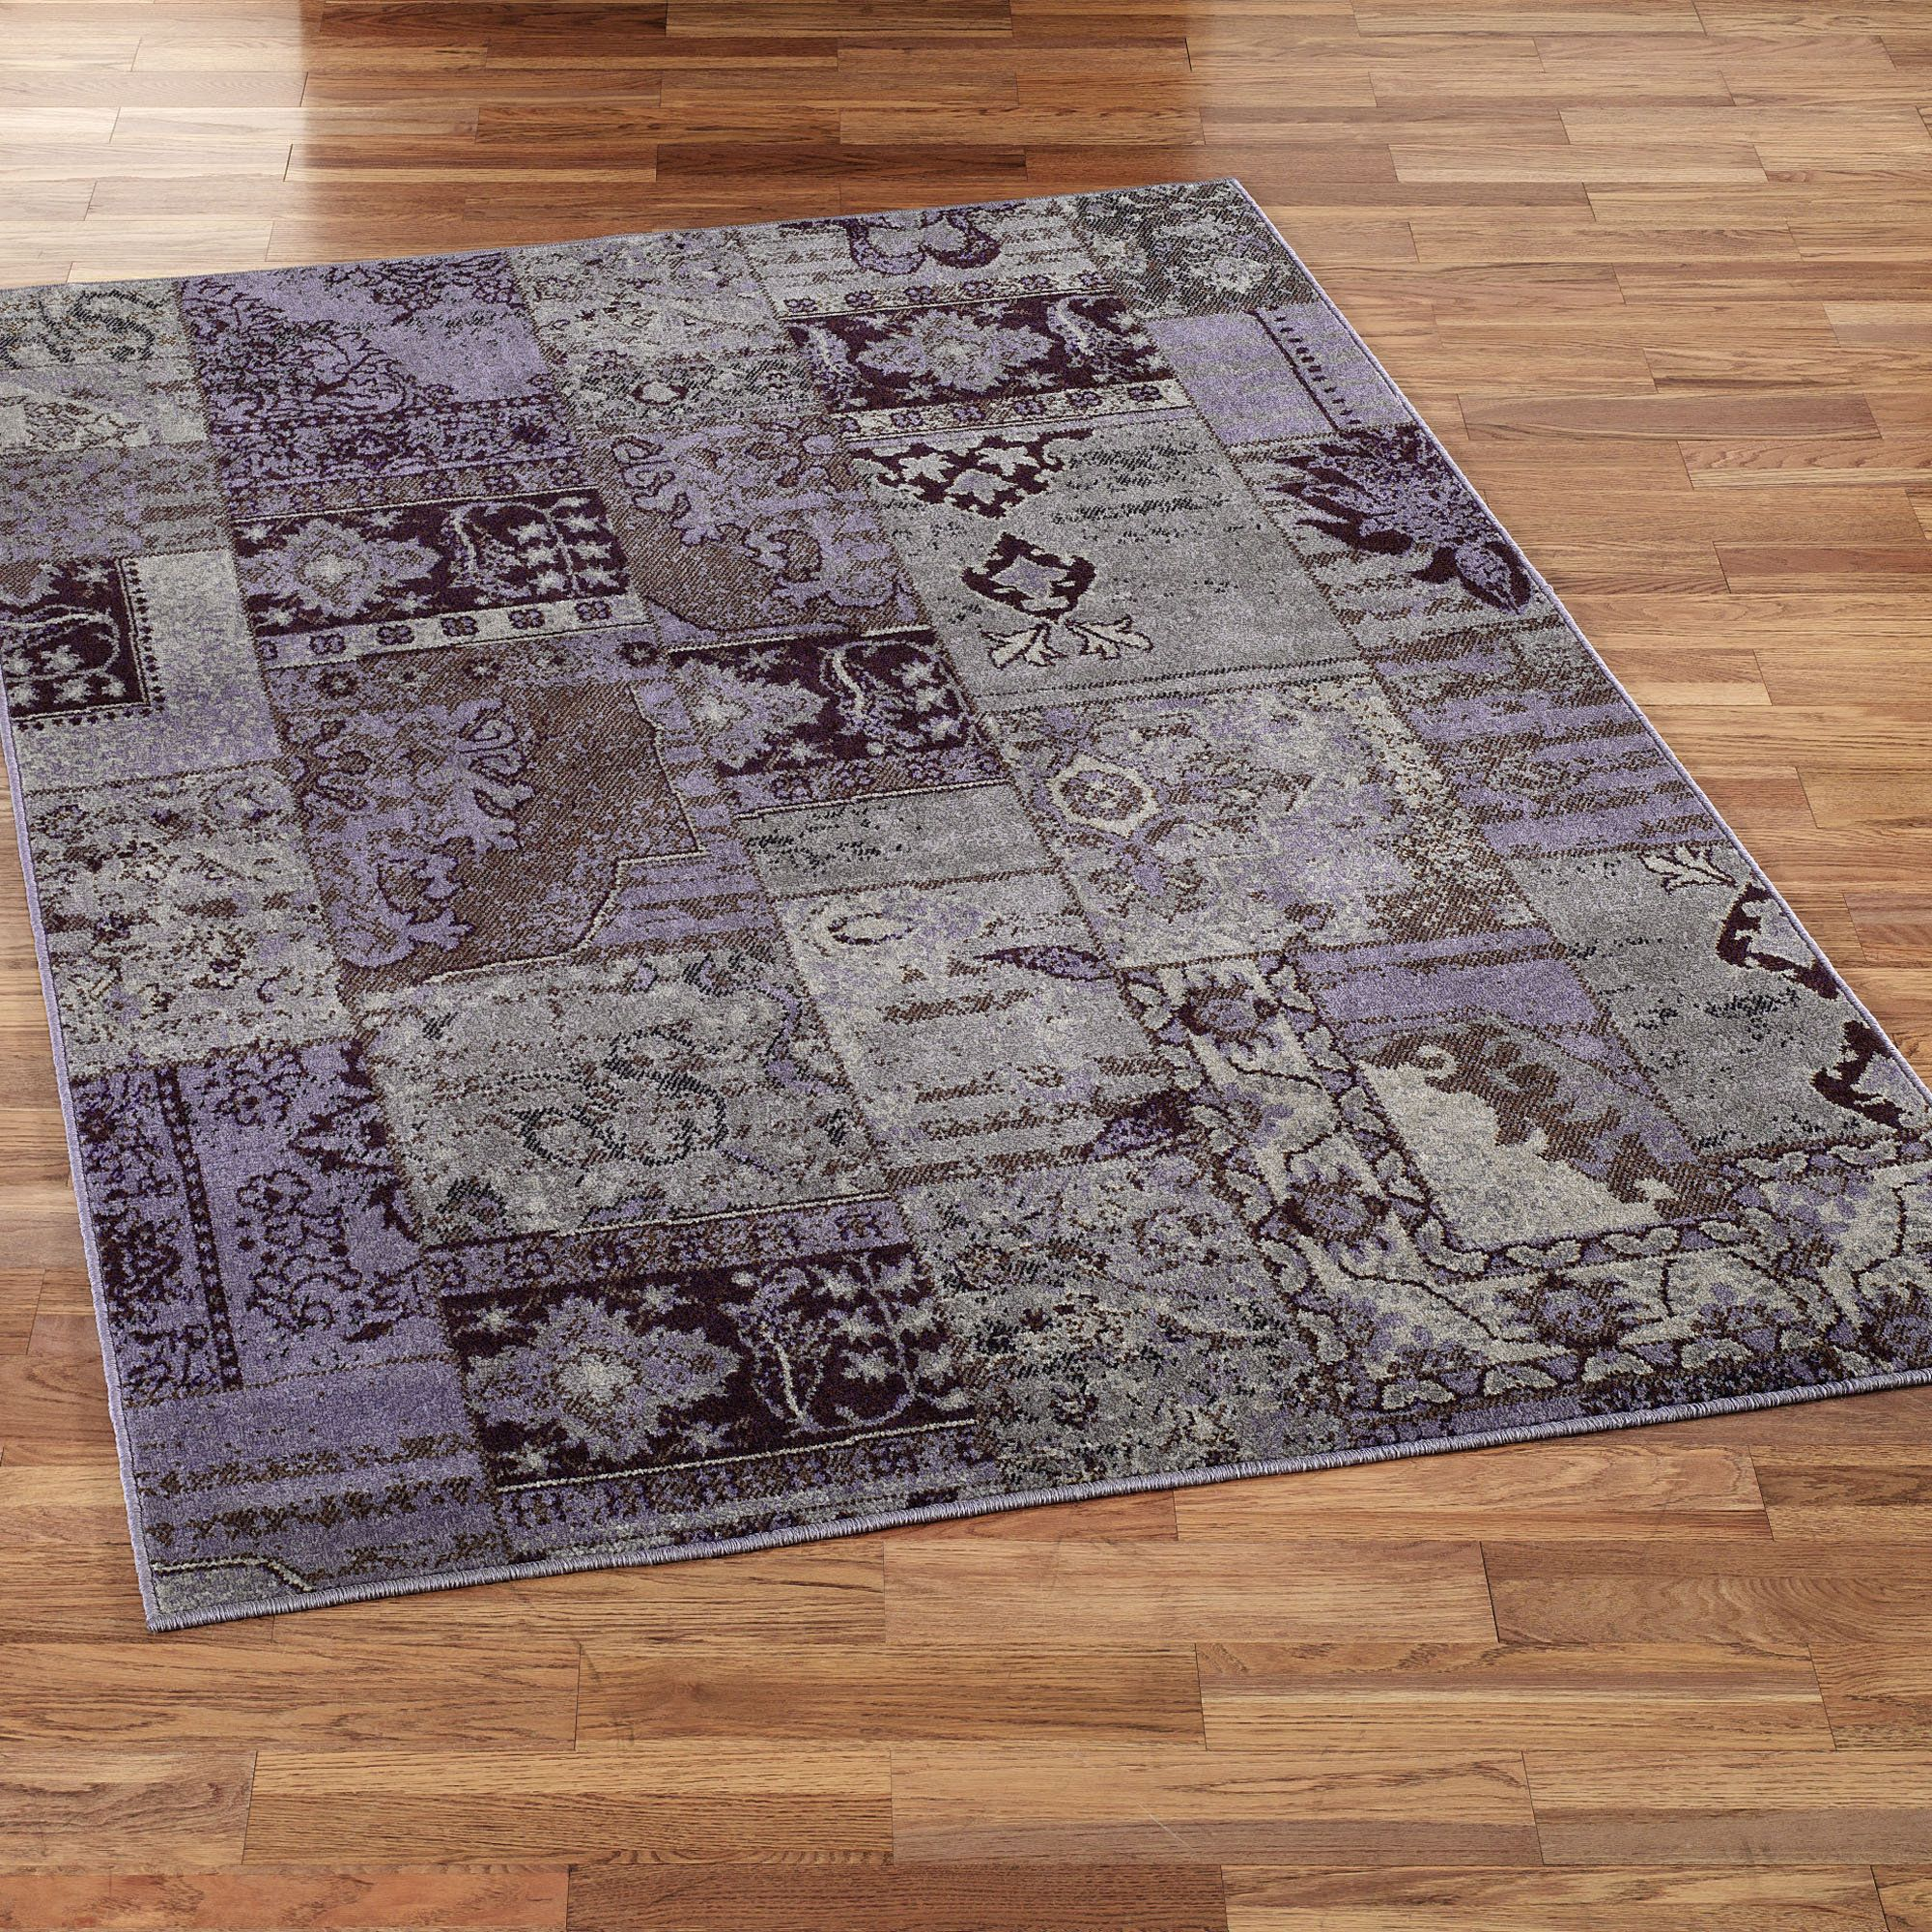 Antique Revival Area Rugs